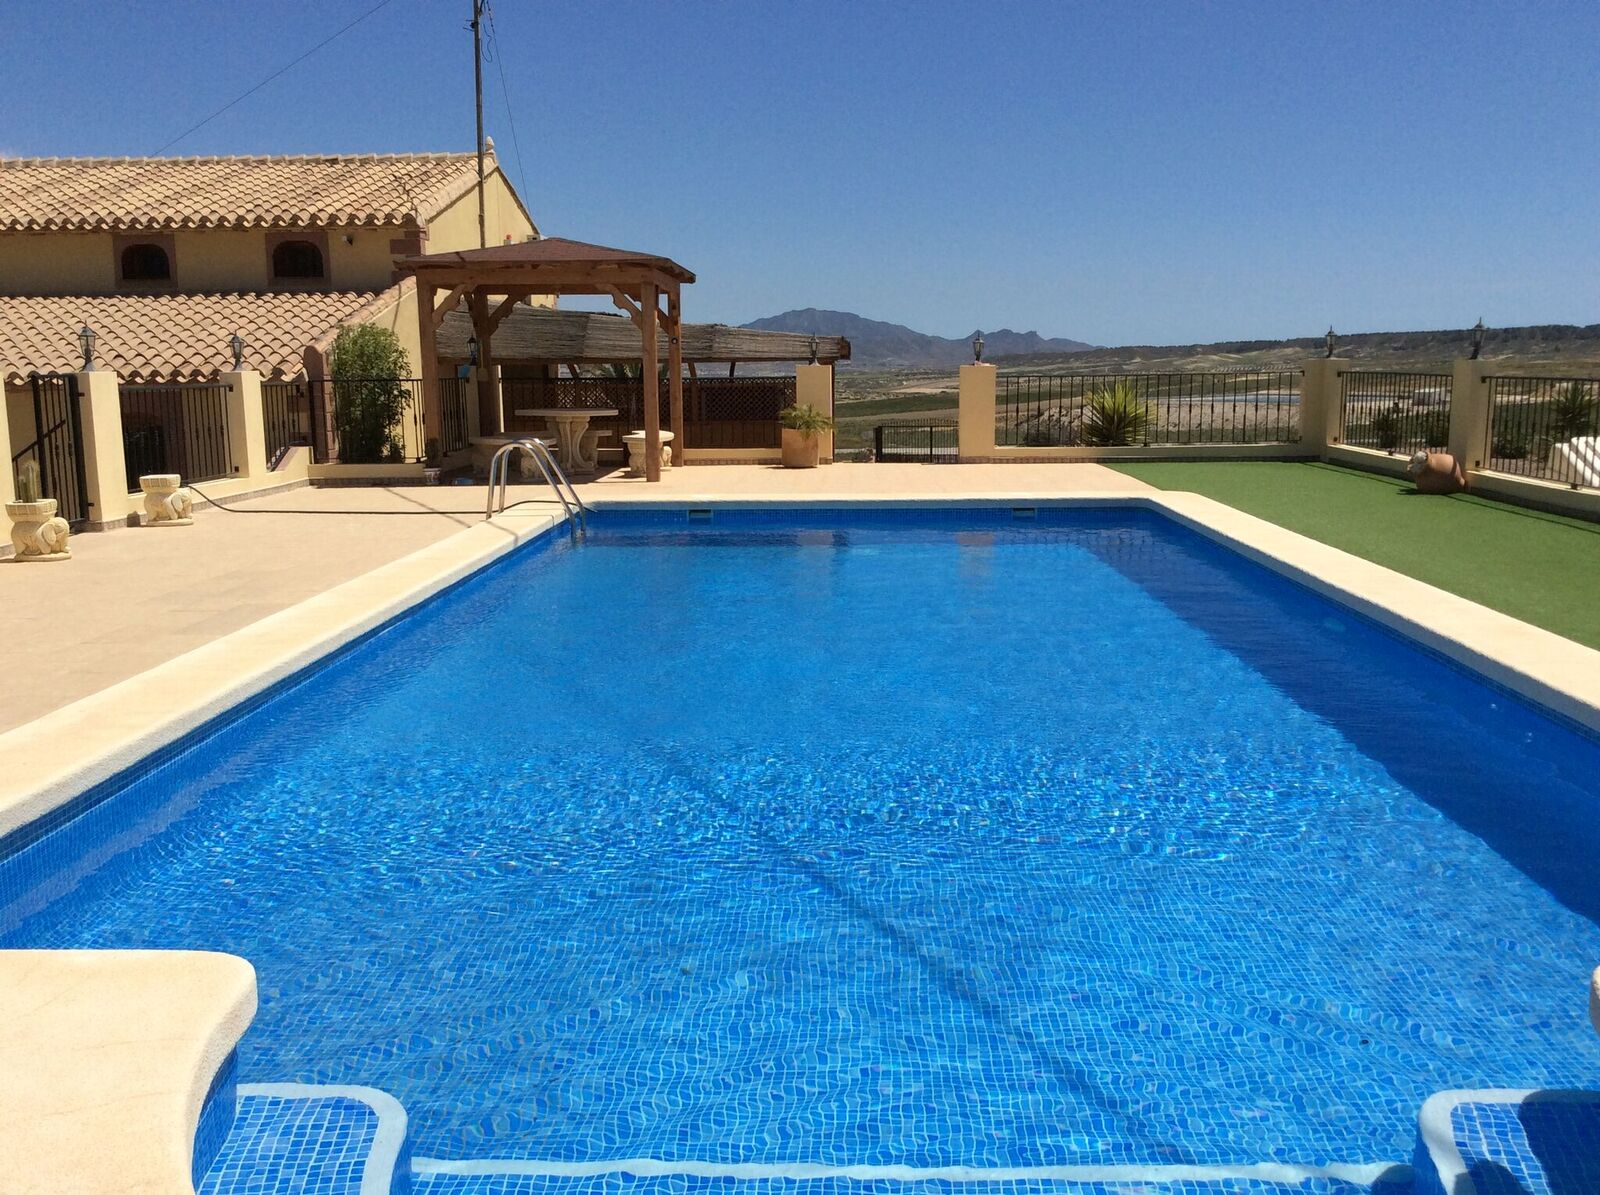 Villa With Guest House And Private Swimming Pool In El Pareton Murcia